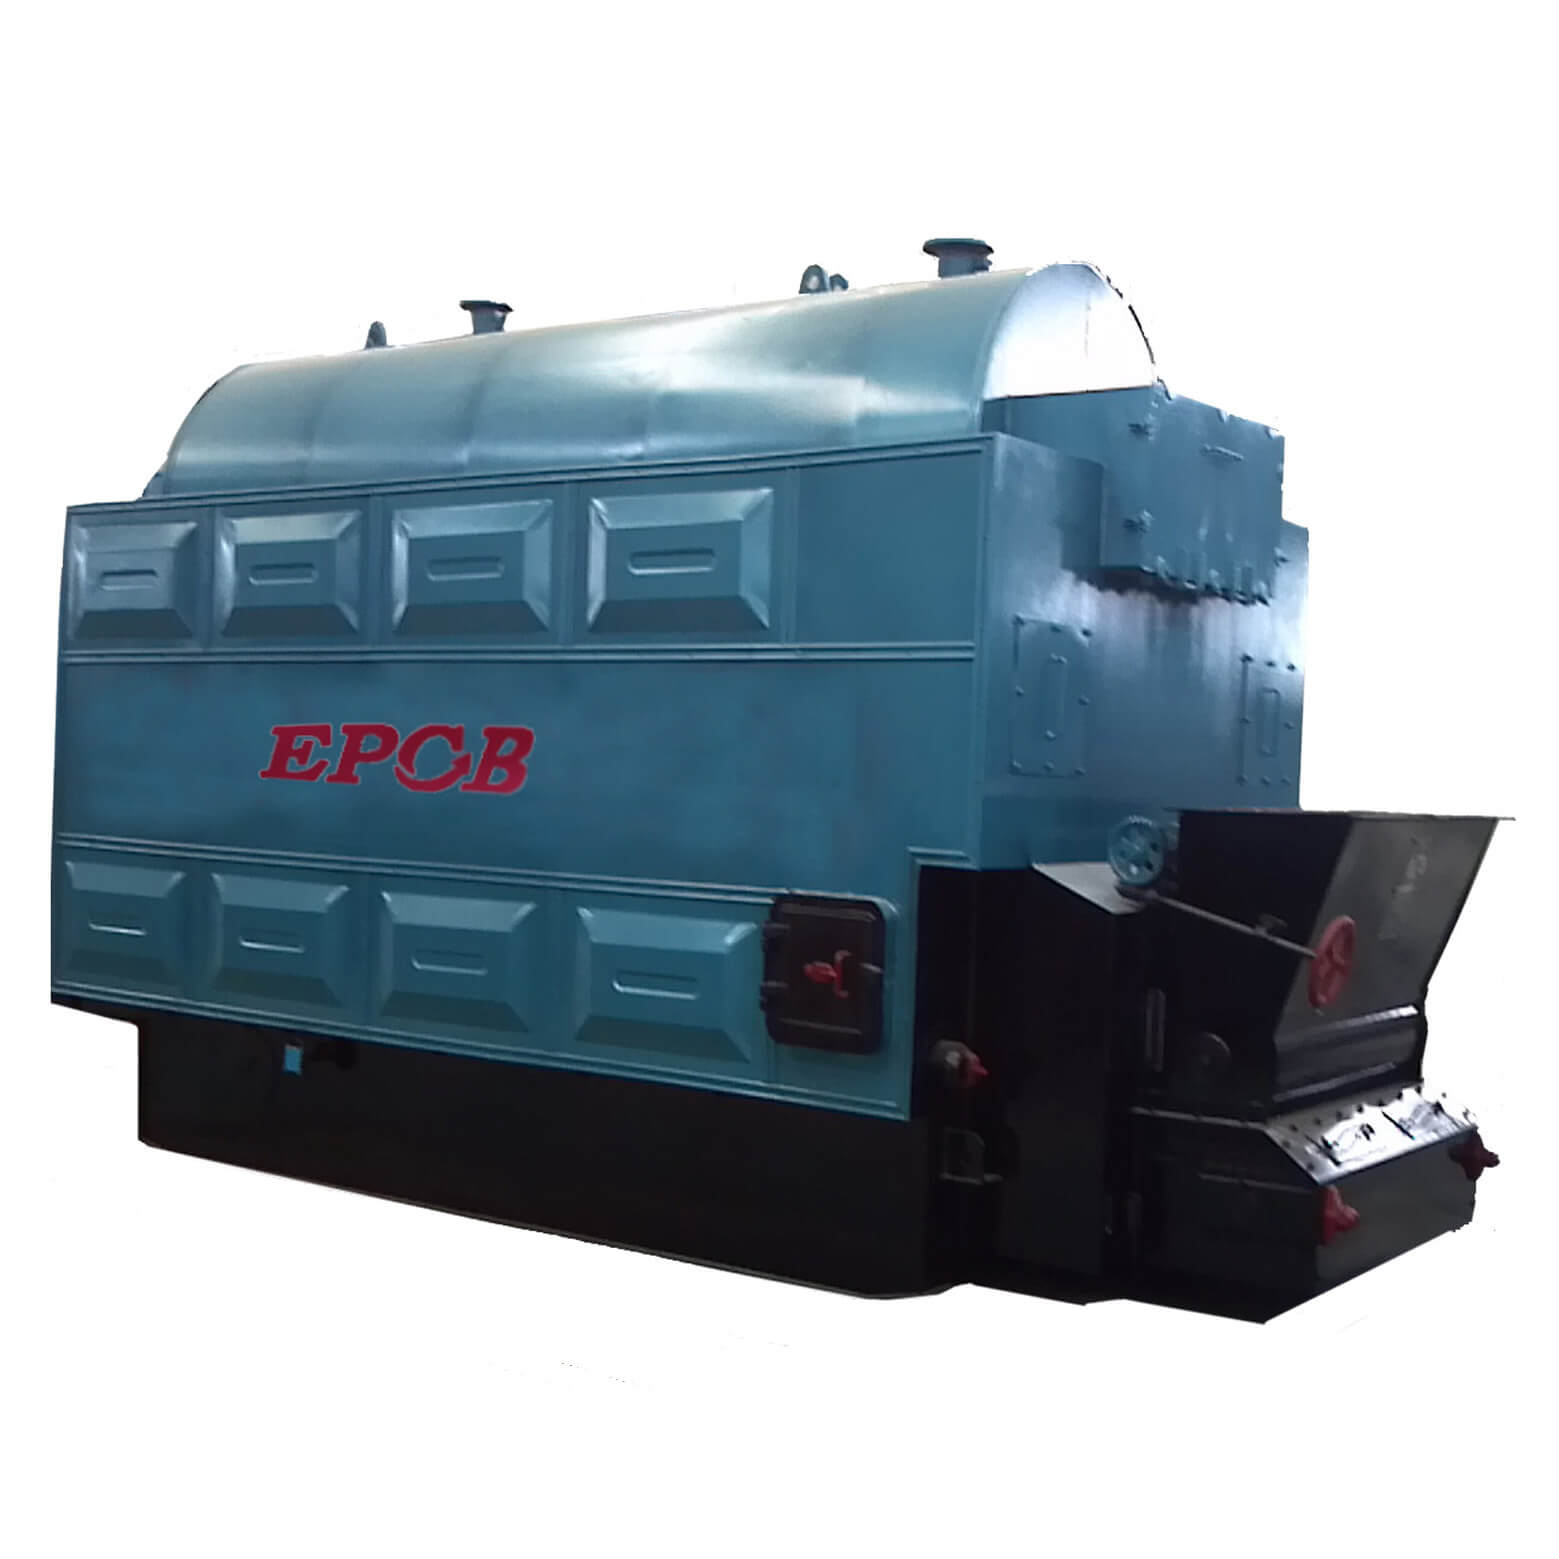 Horizontal Chain Grate Biomass Fired Steam Boiler - Buy Steam Boiler ...